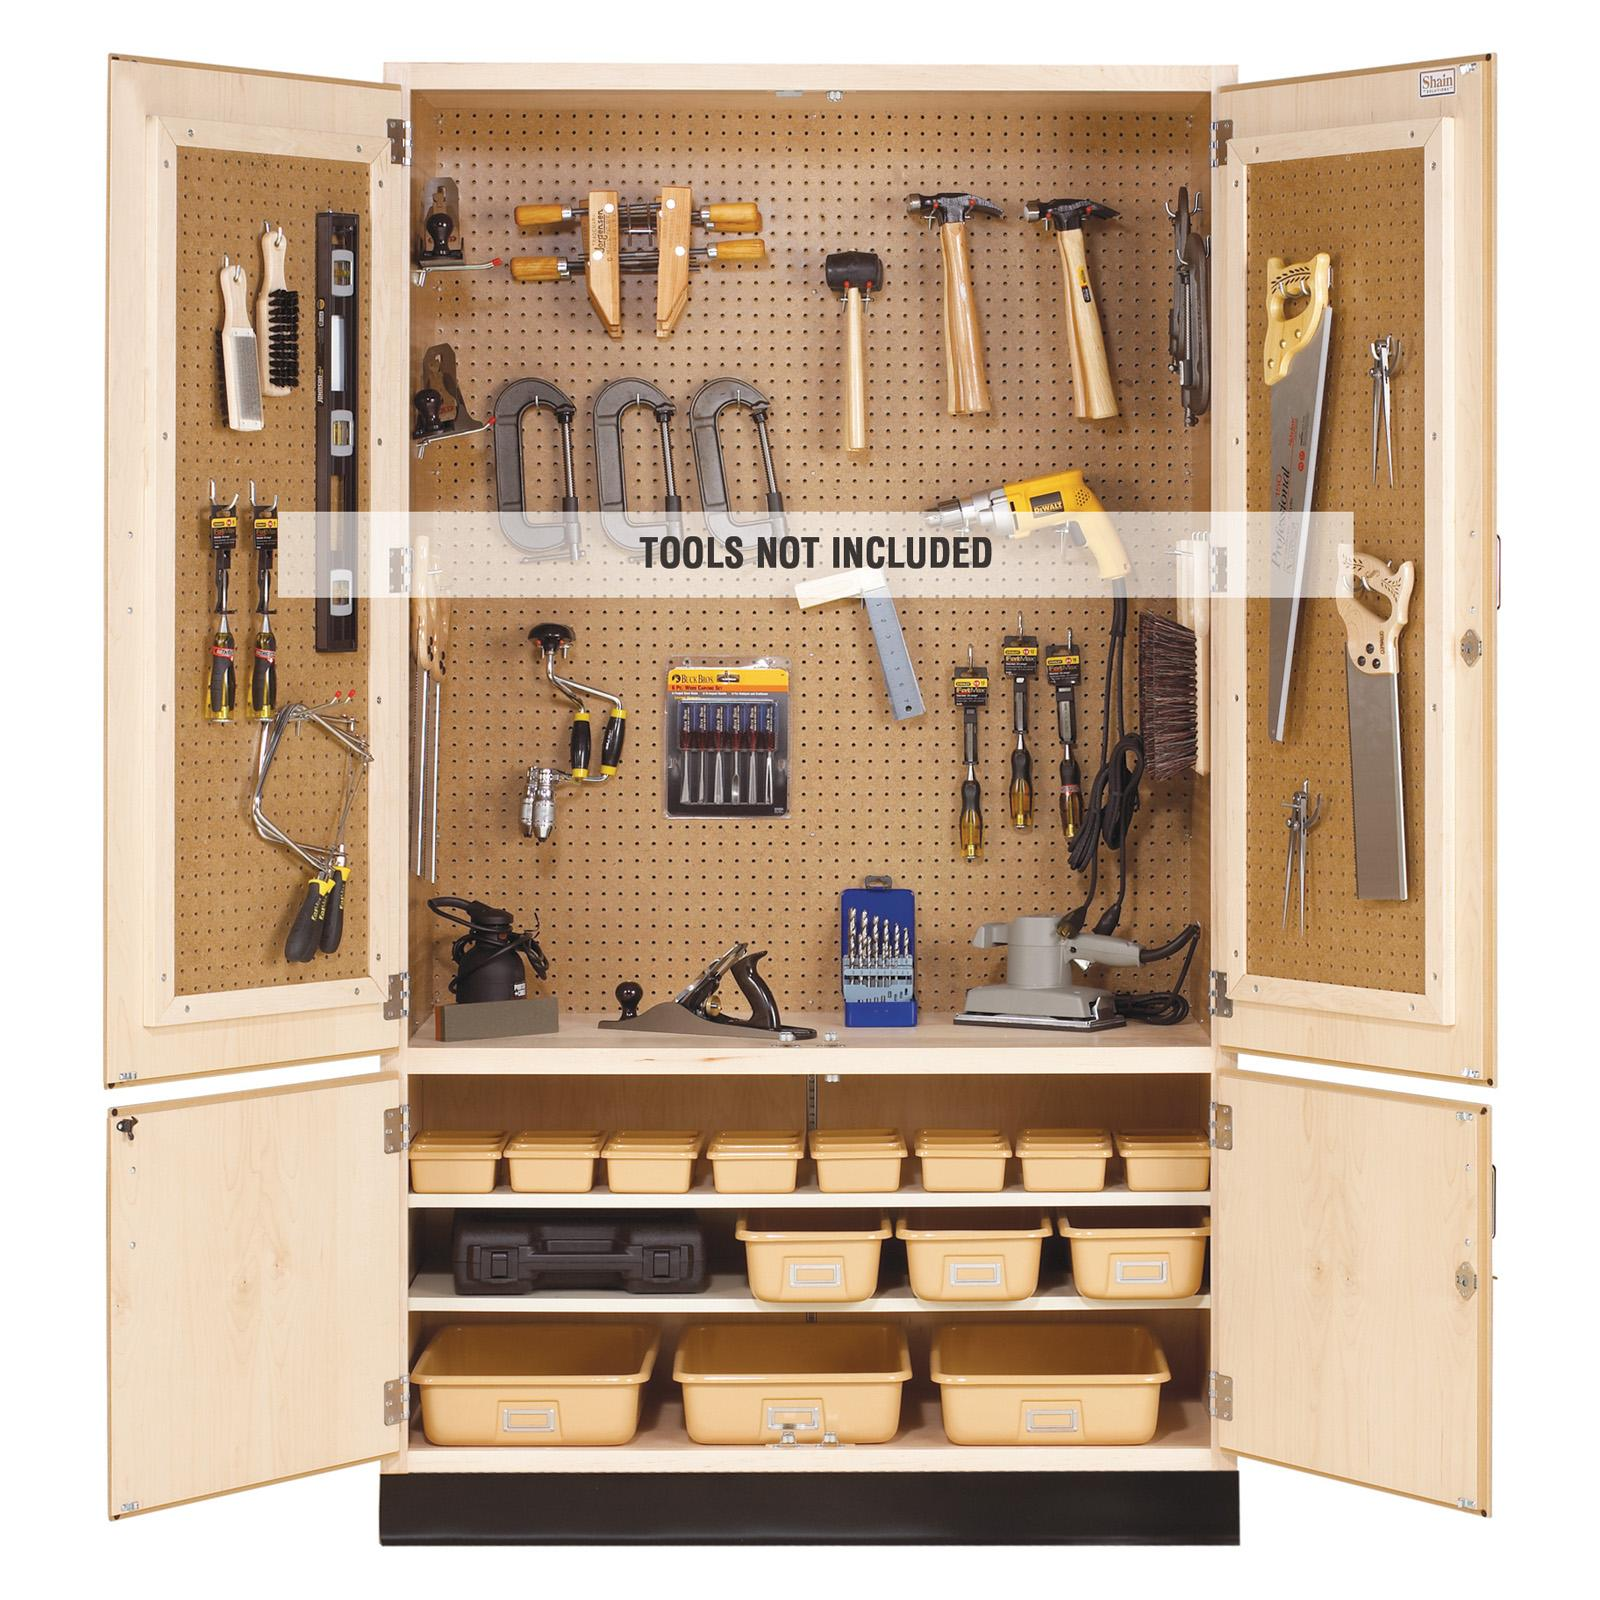 Diversified Woodcrafts Tool Storage Cabinet - TC-4810